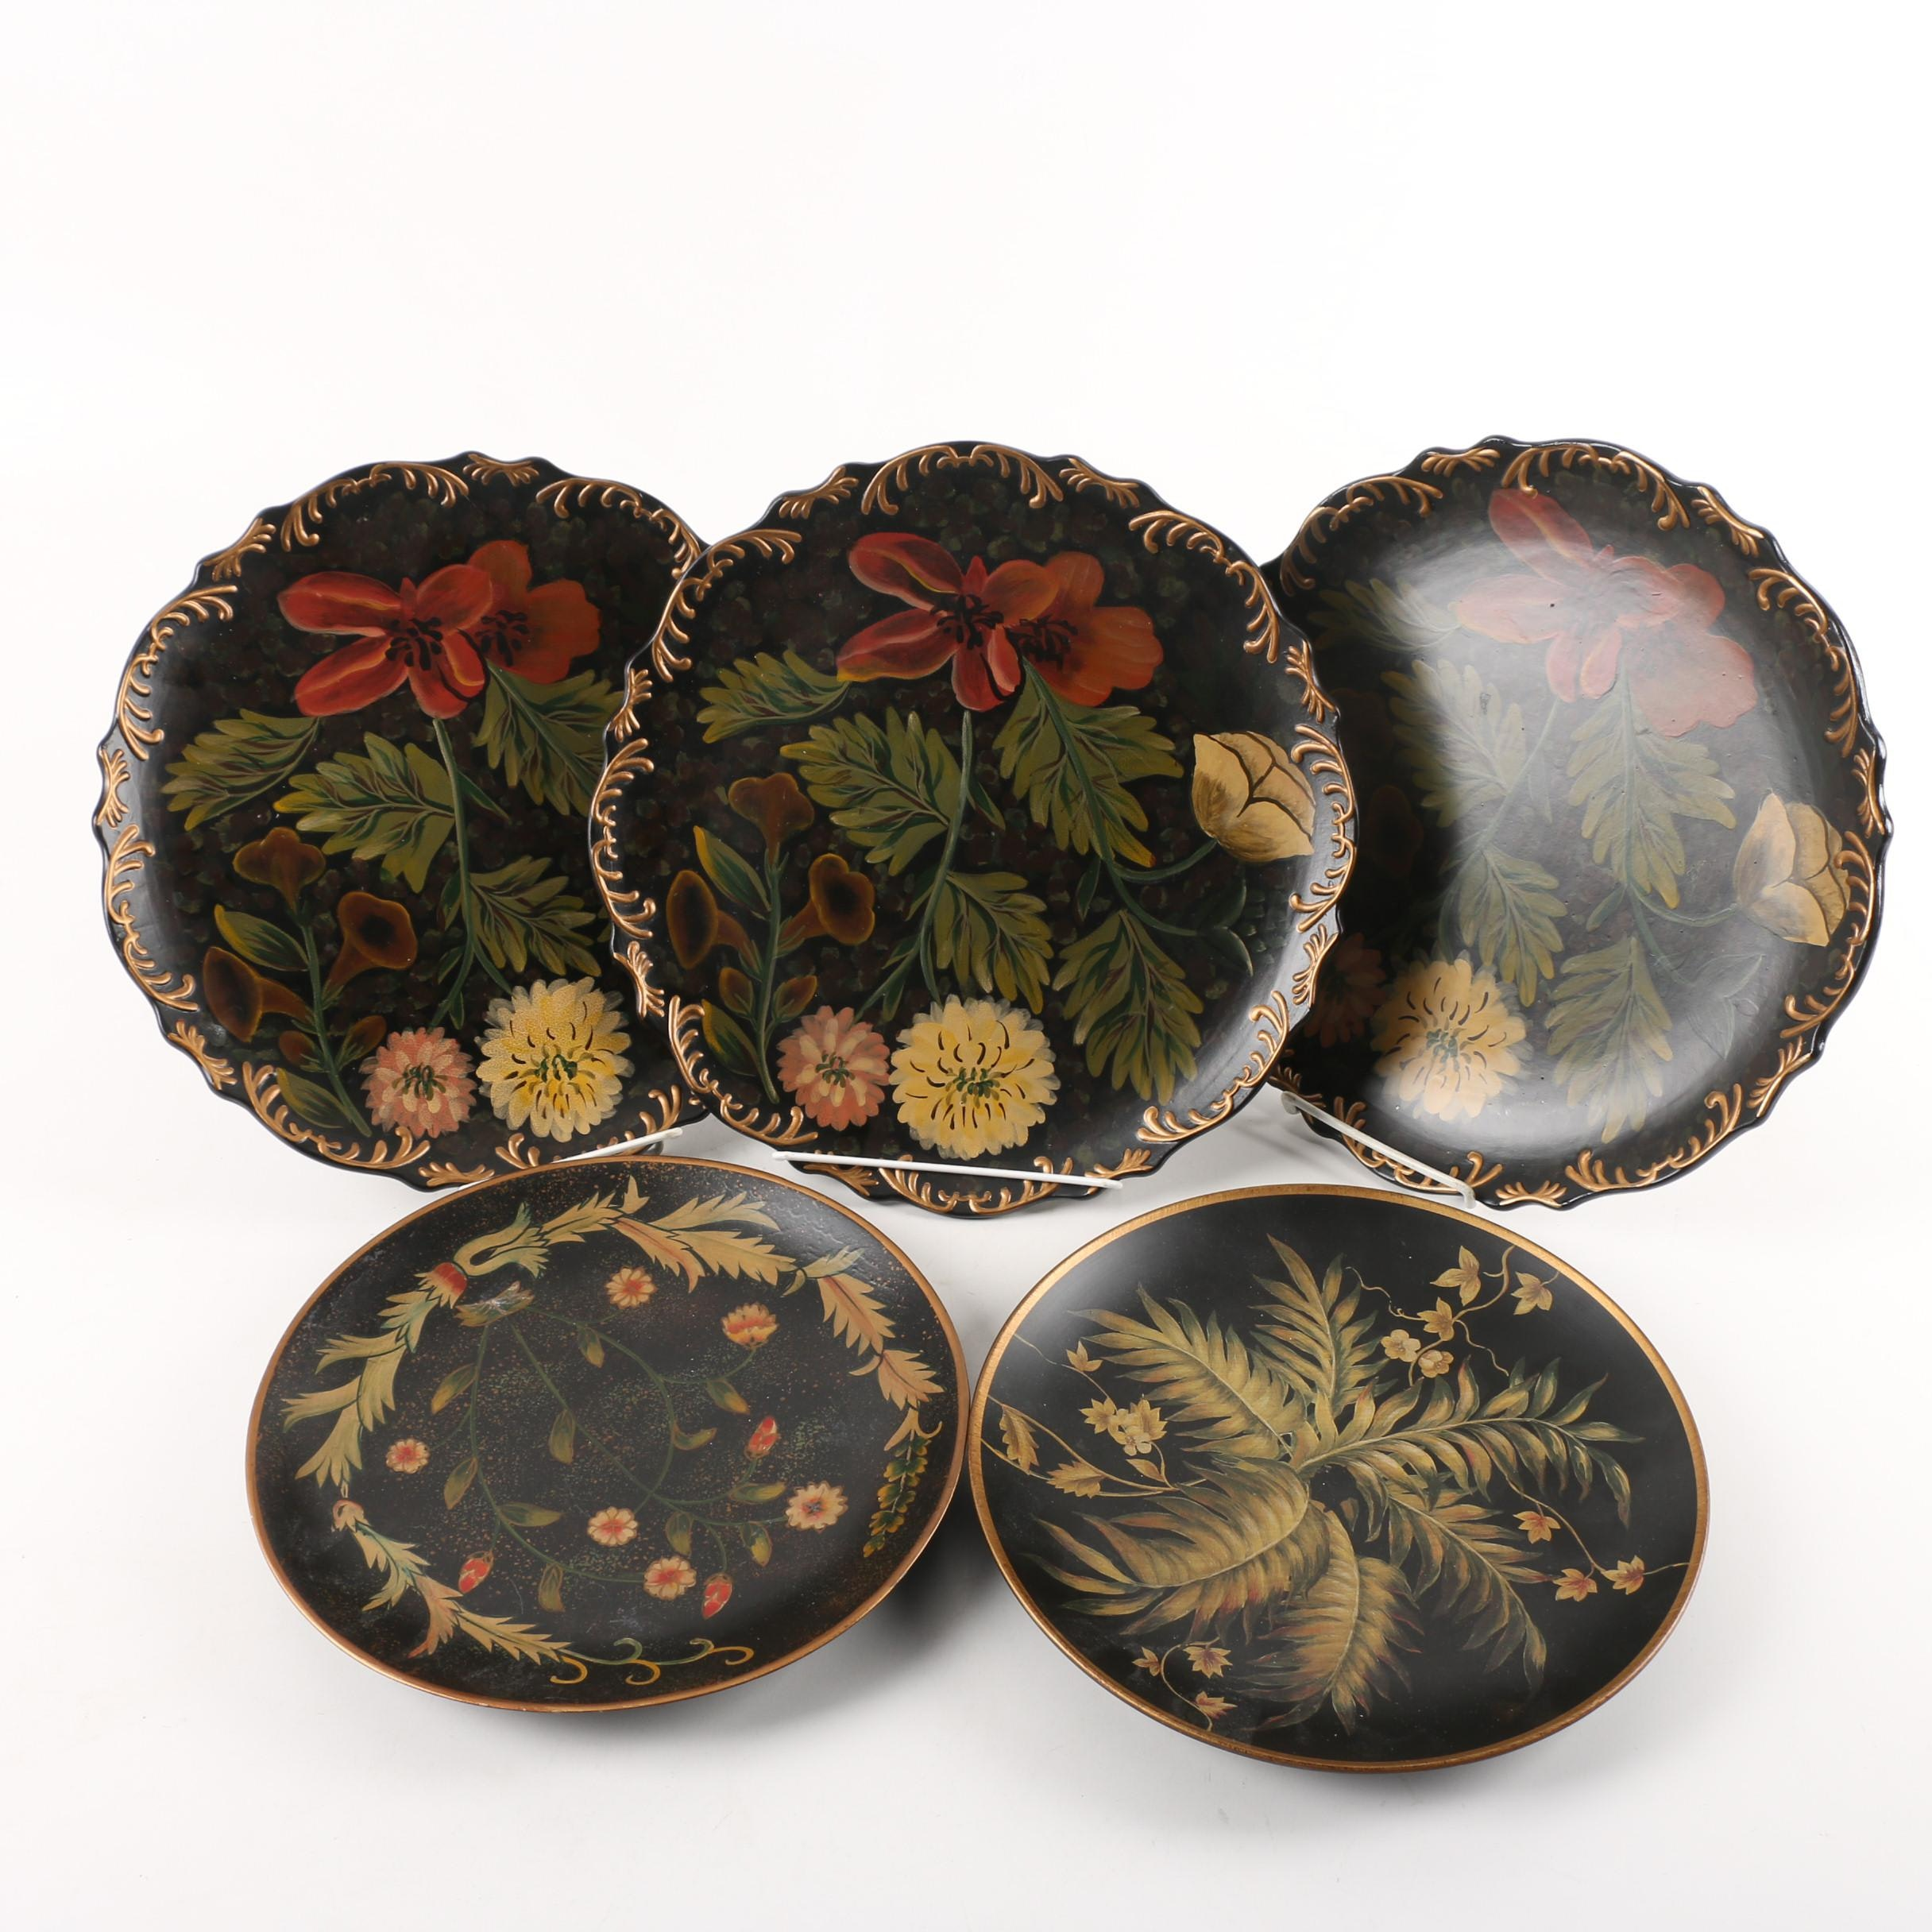 Decorative Floral and Foliate Painted Plates